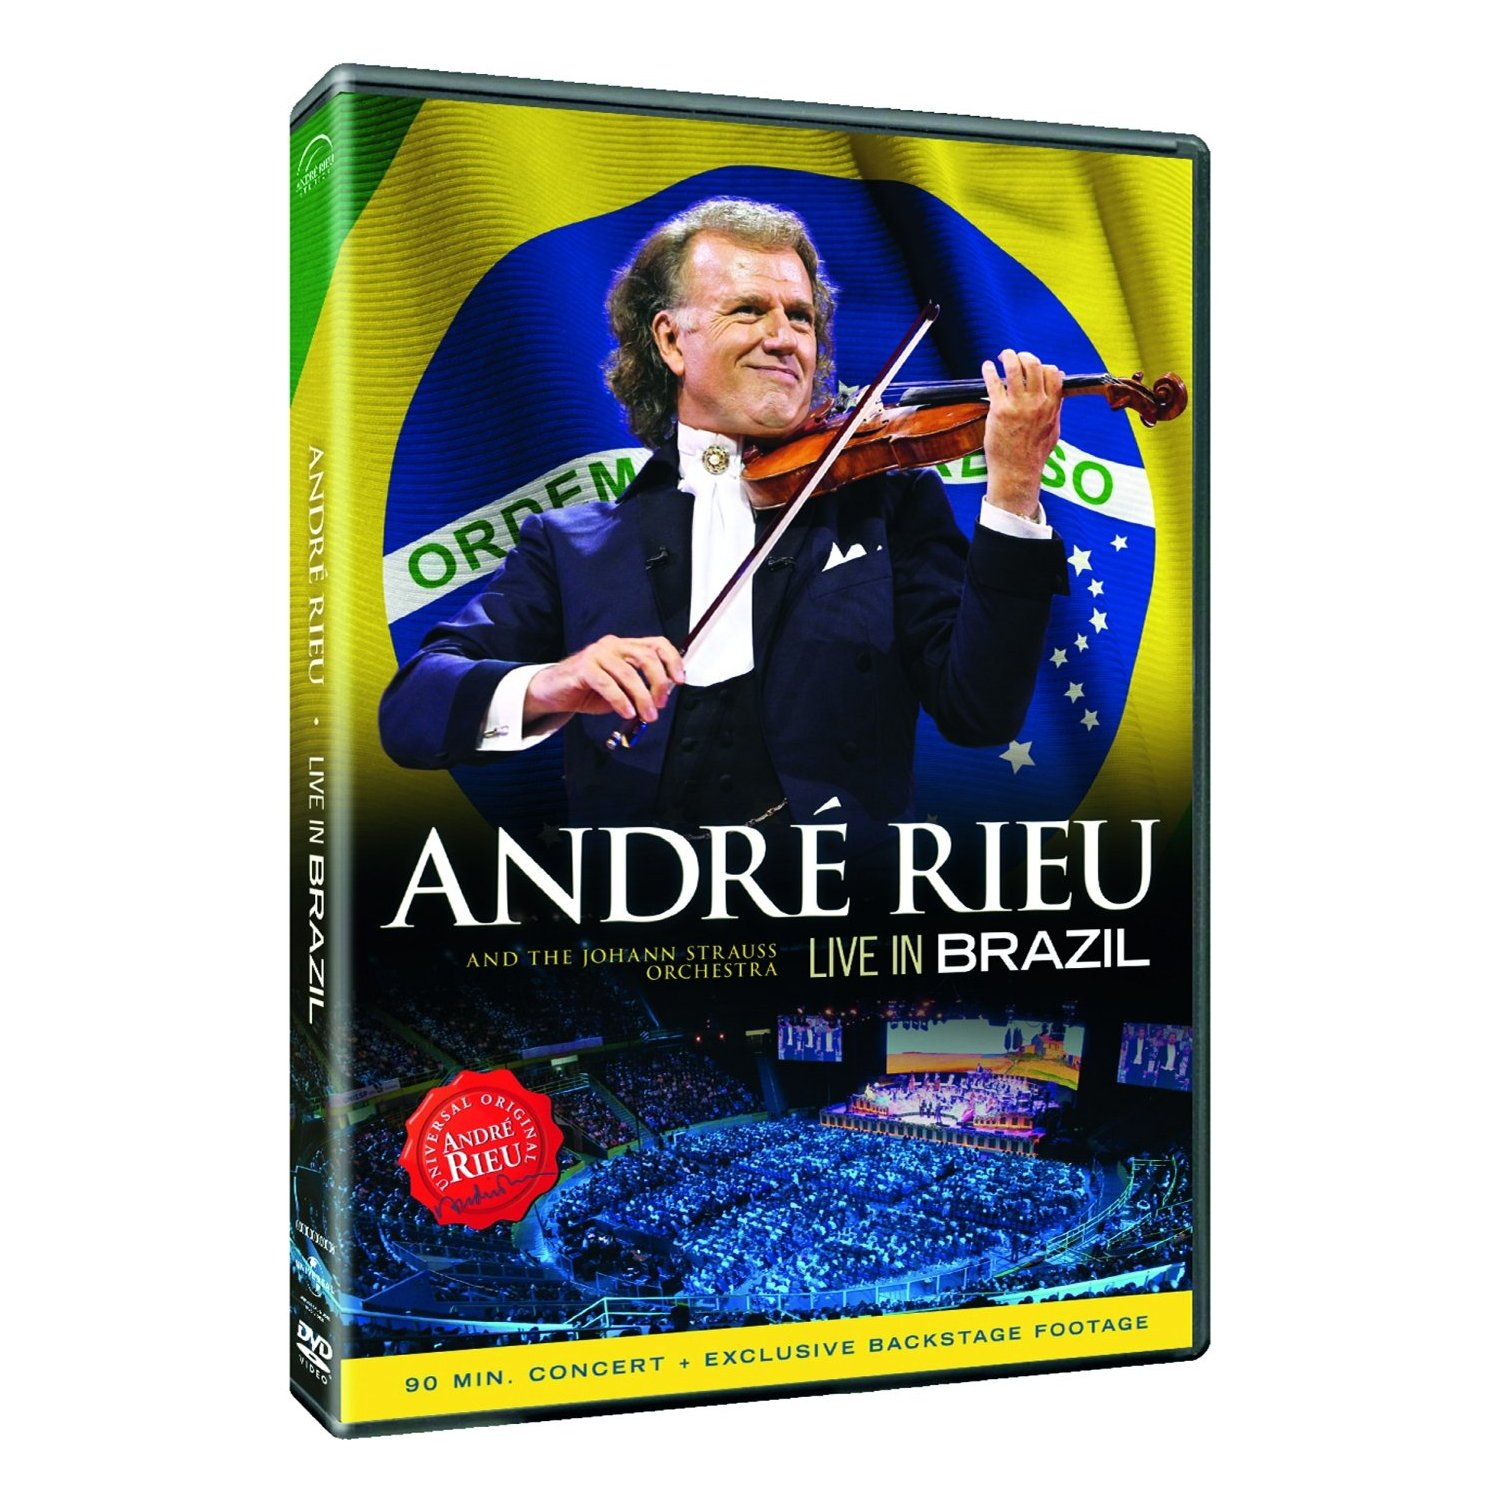 André Rieu and His Johann Strauss Orchestra: Live in Brazil